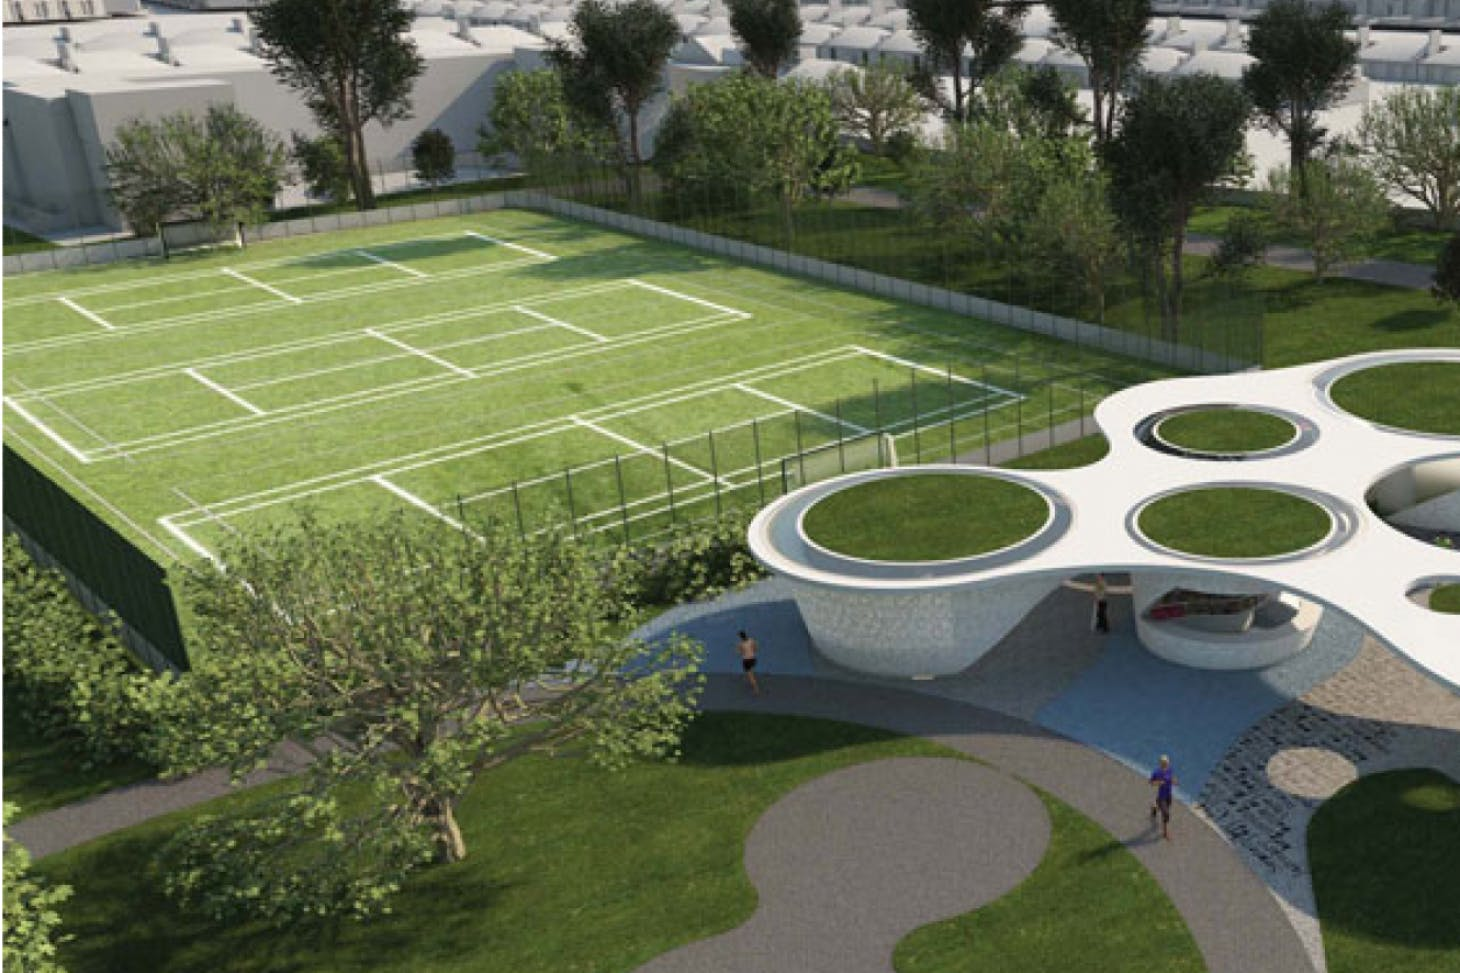 Avondale Park 5 a side   3G Astroturf football pitch